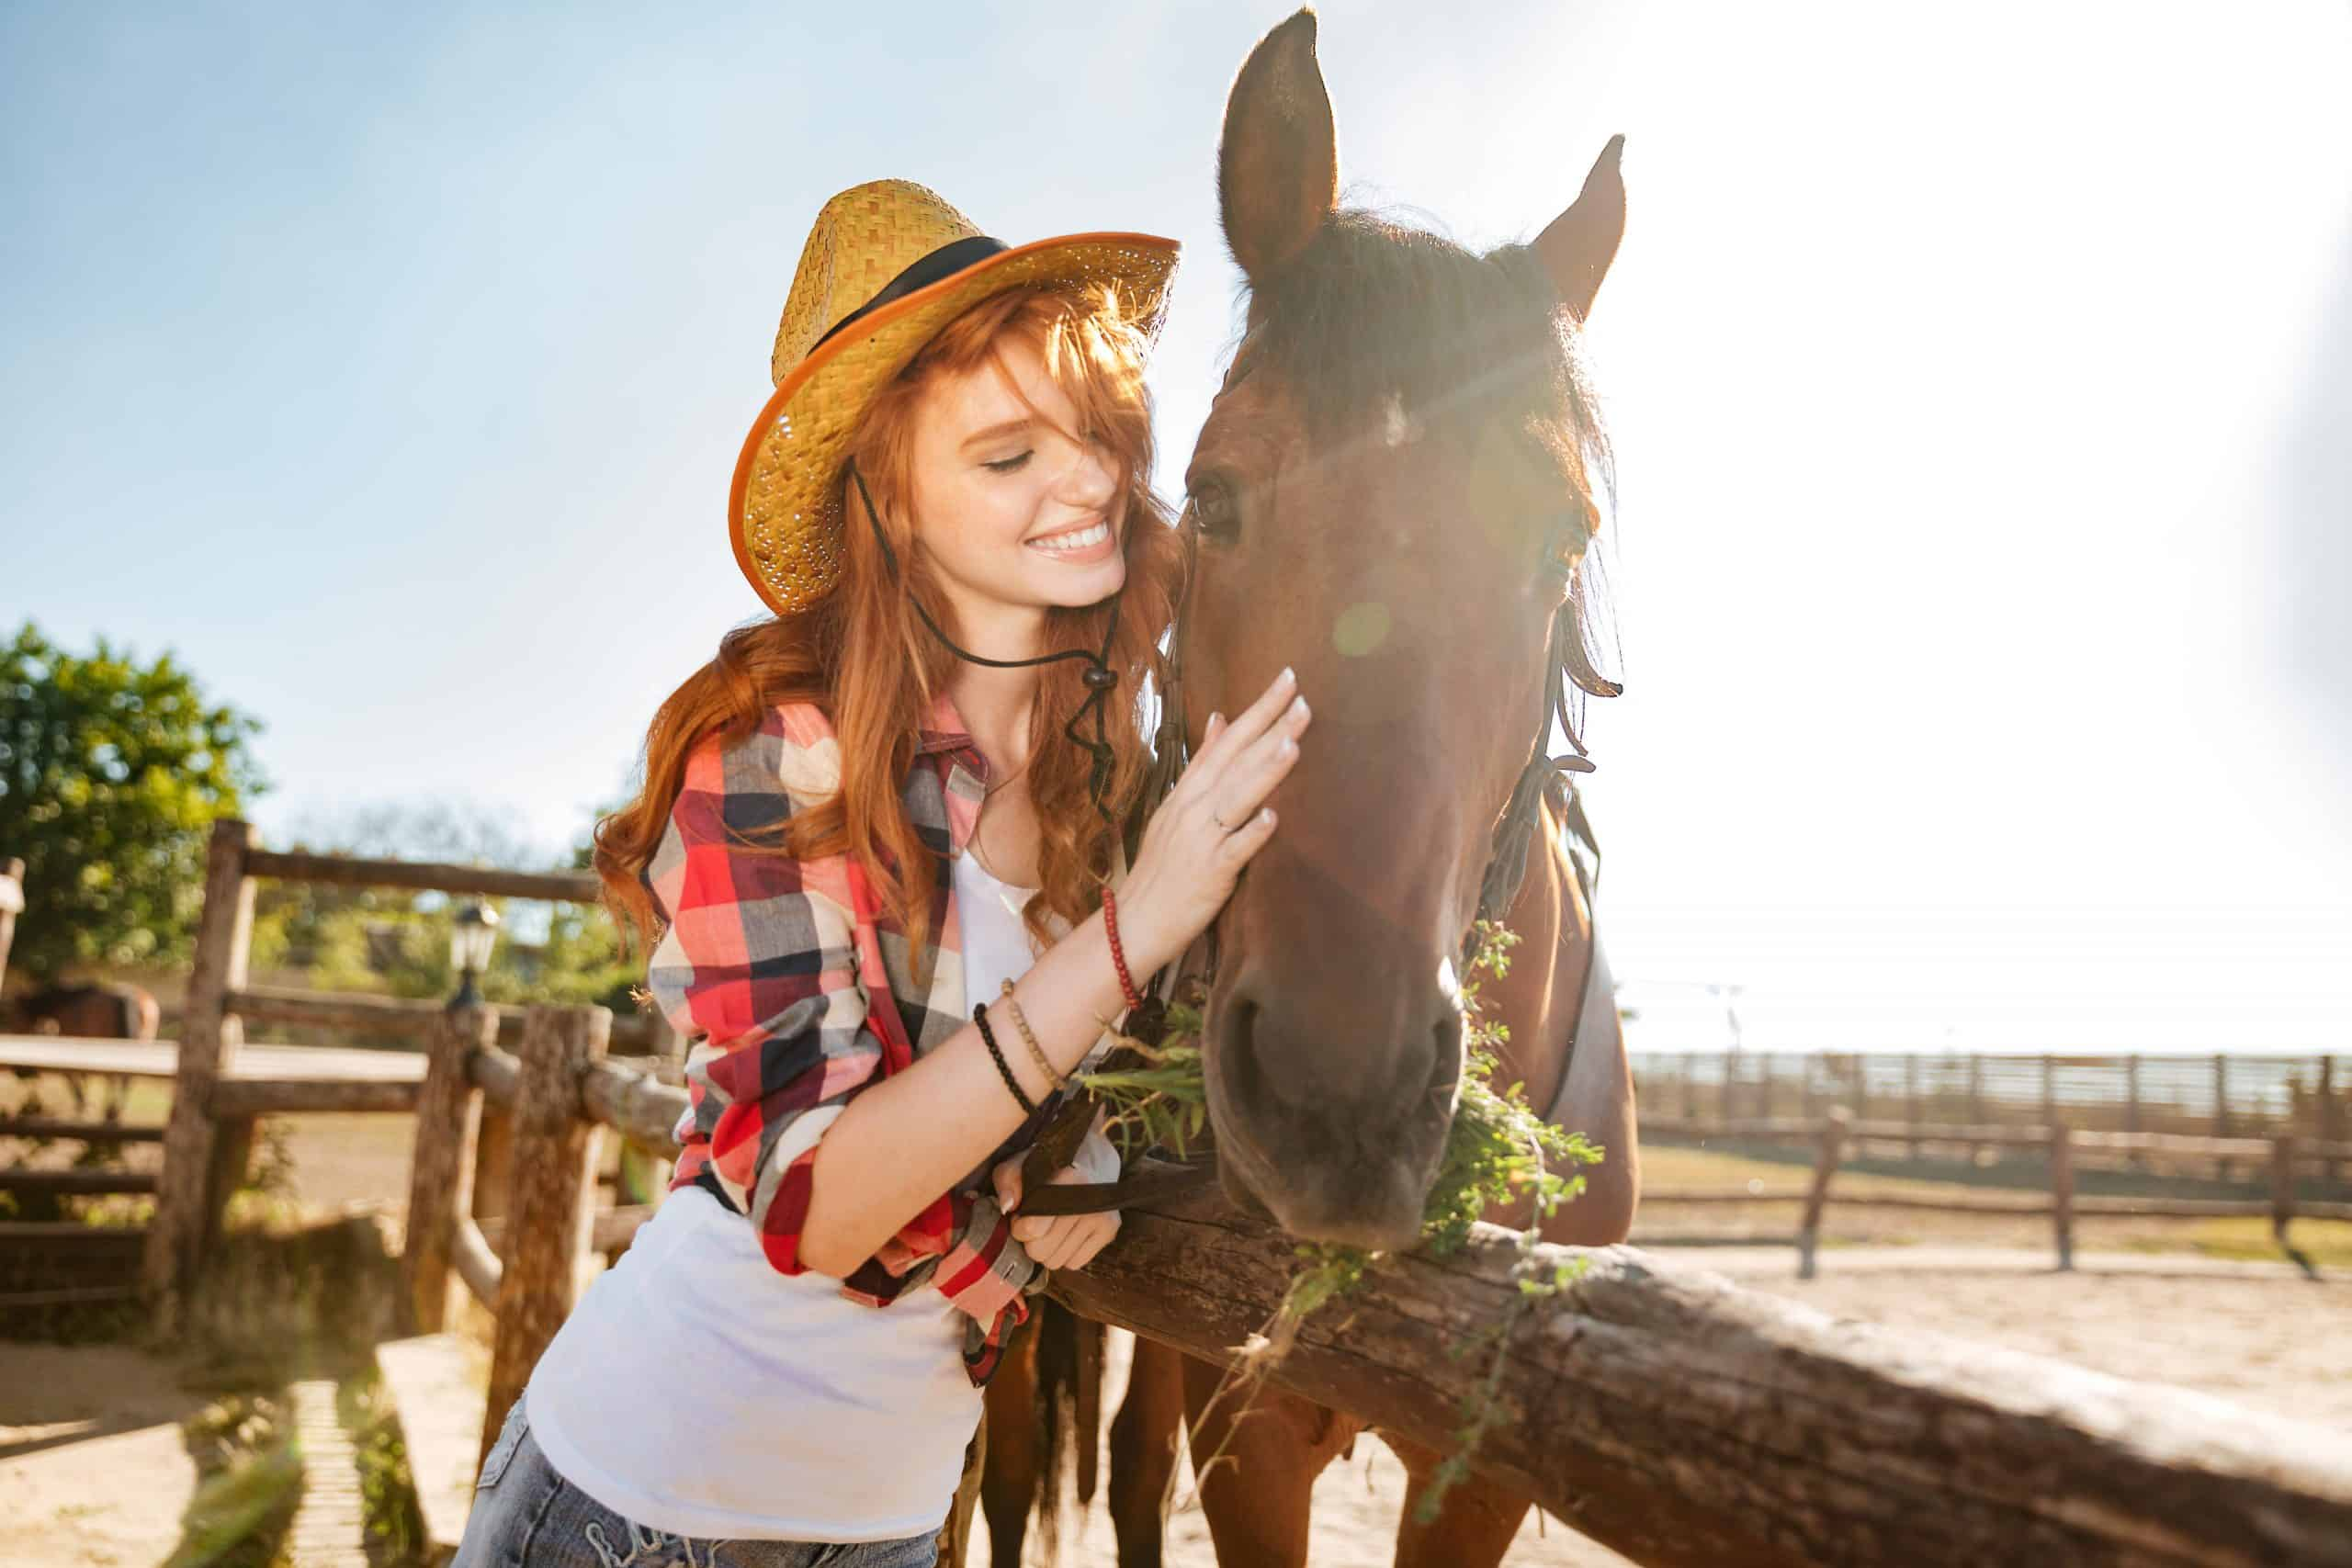 Smiling cute young woman cowgirl taking care and hugging her horse